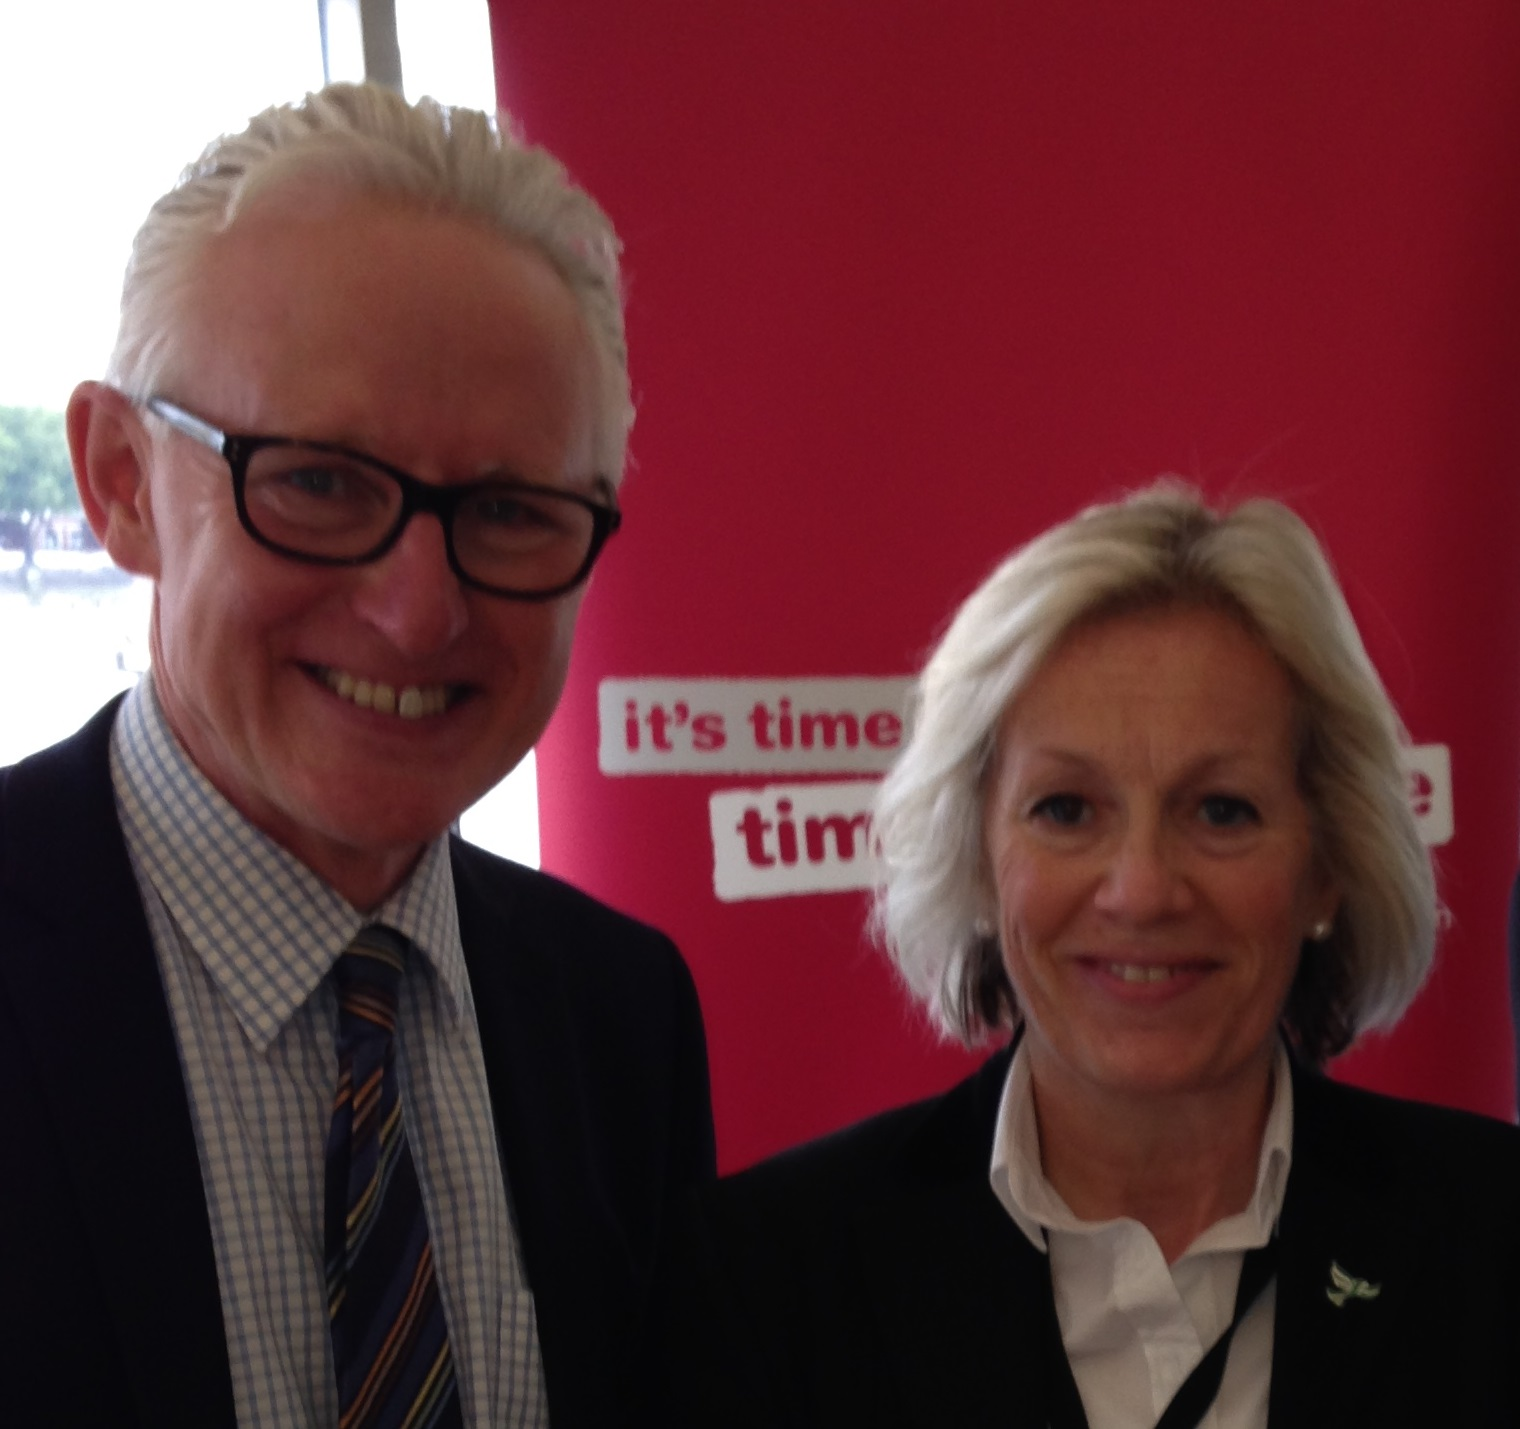 Tessa and Health Minister Norman Lamb